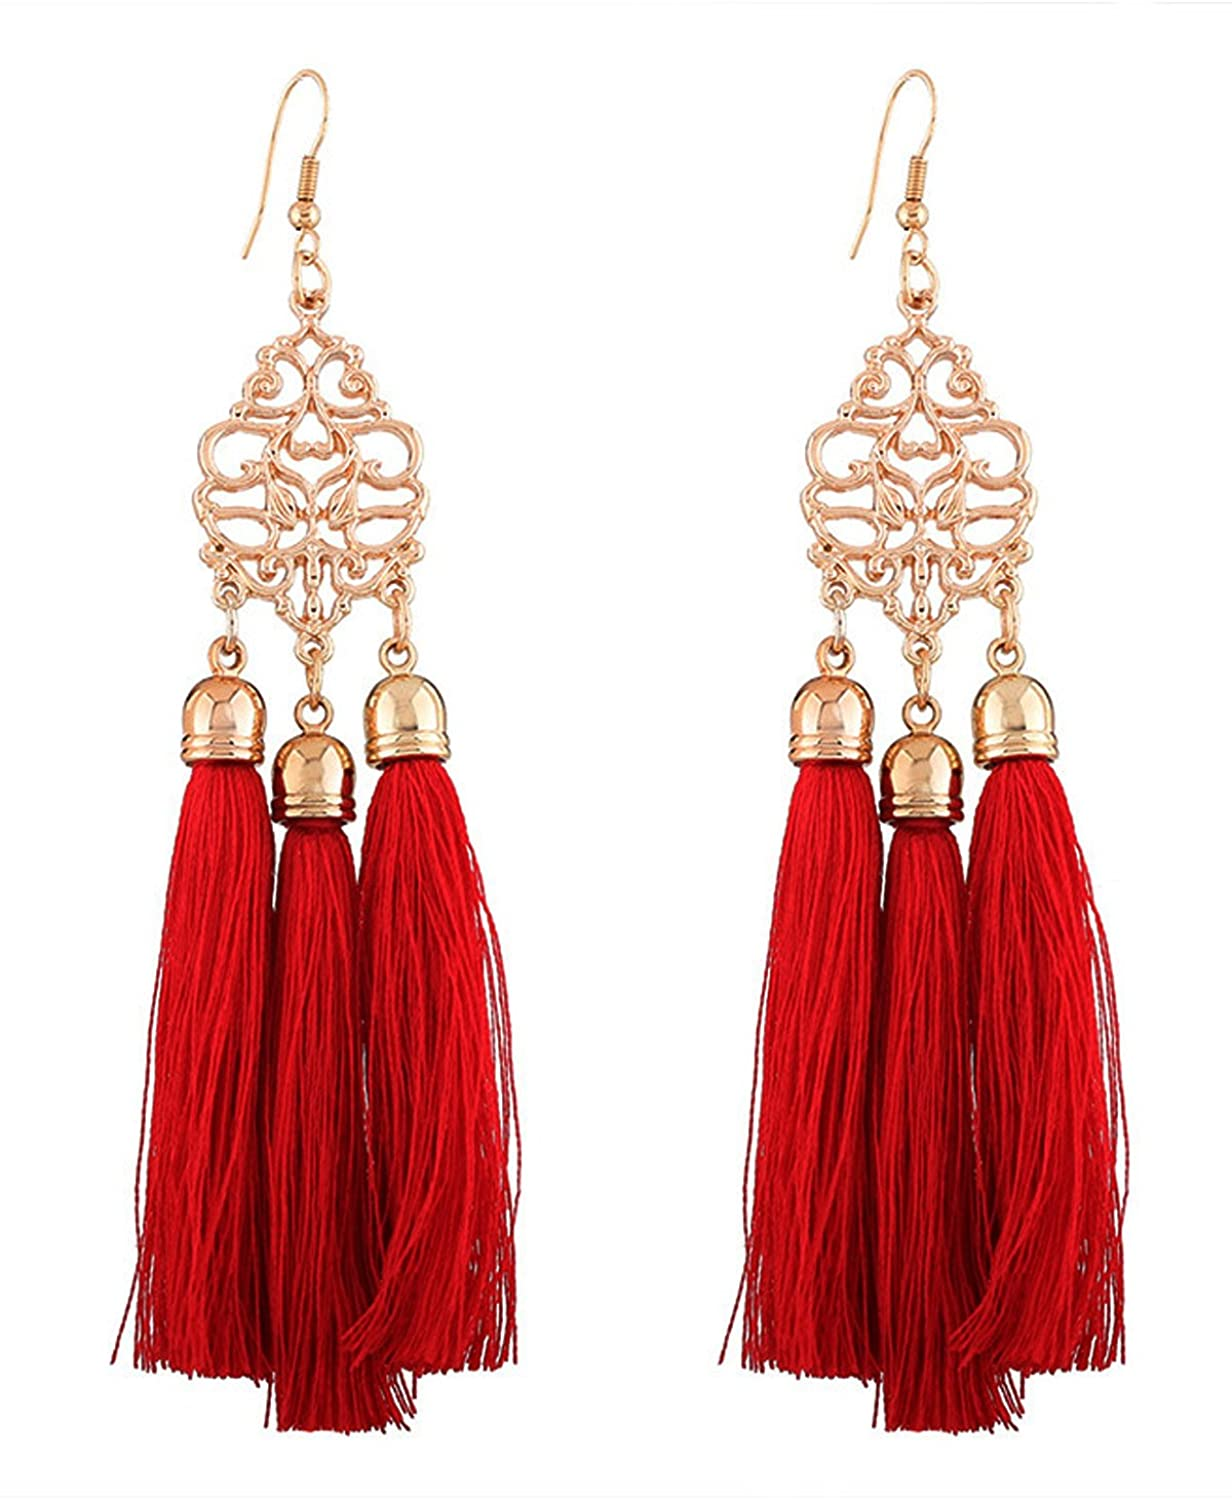 Young & Forever diwali gifts for family and friends boho gypsy gold red tassel dangler earring for girls stylish latest for wedding party wear simple fancy design western trendy statement long earrings for women